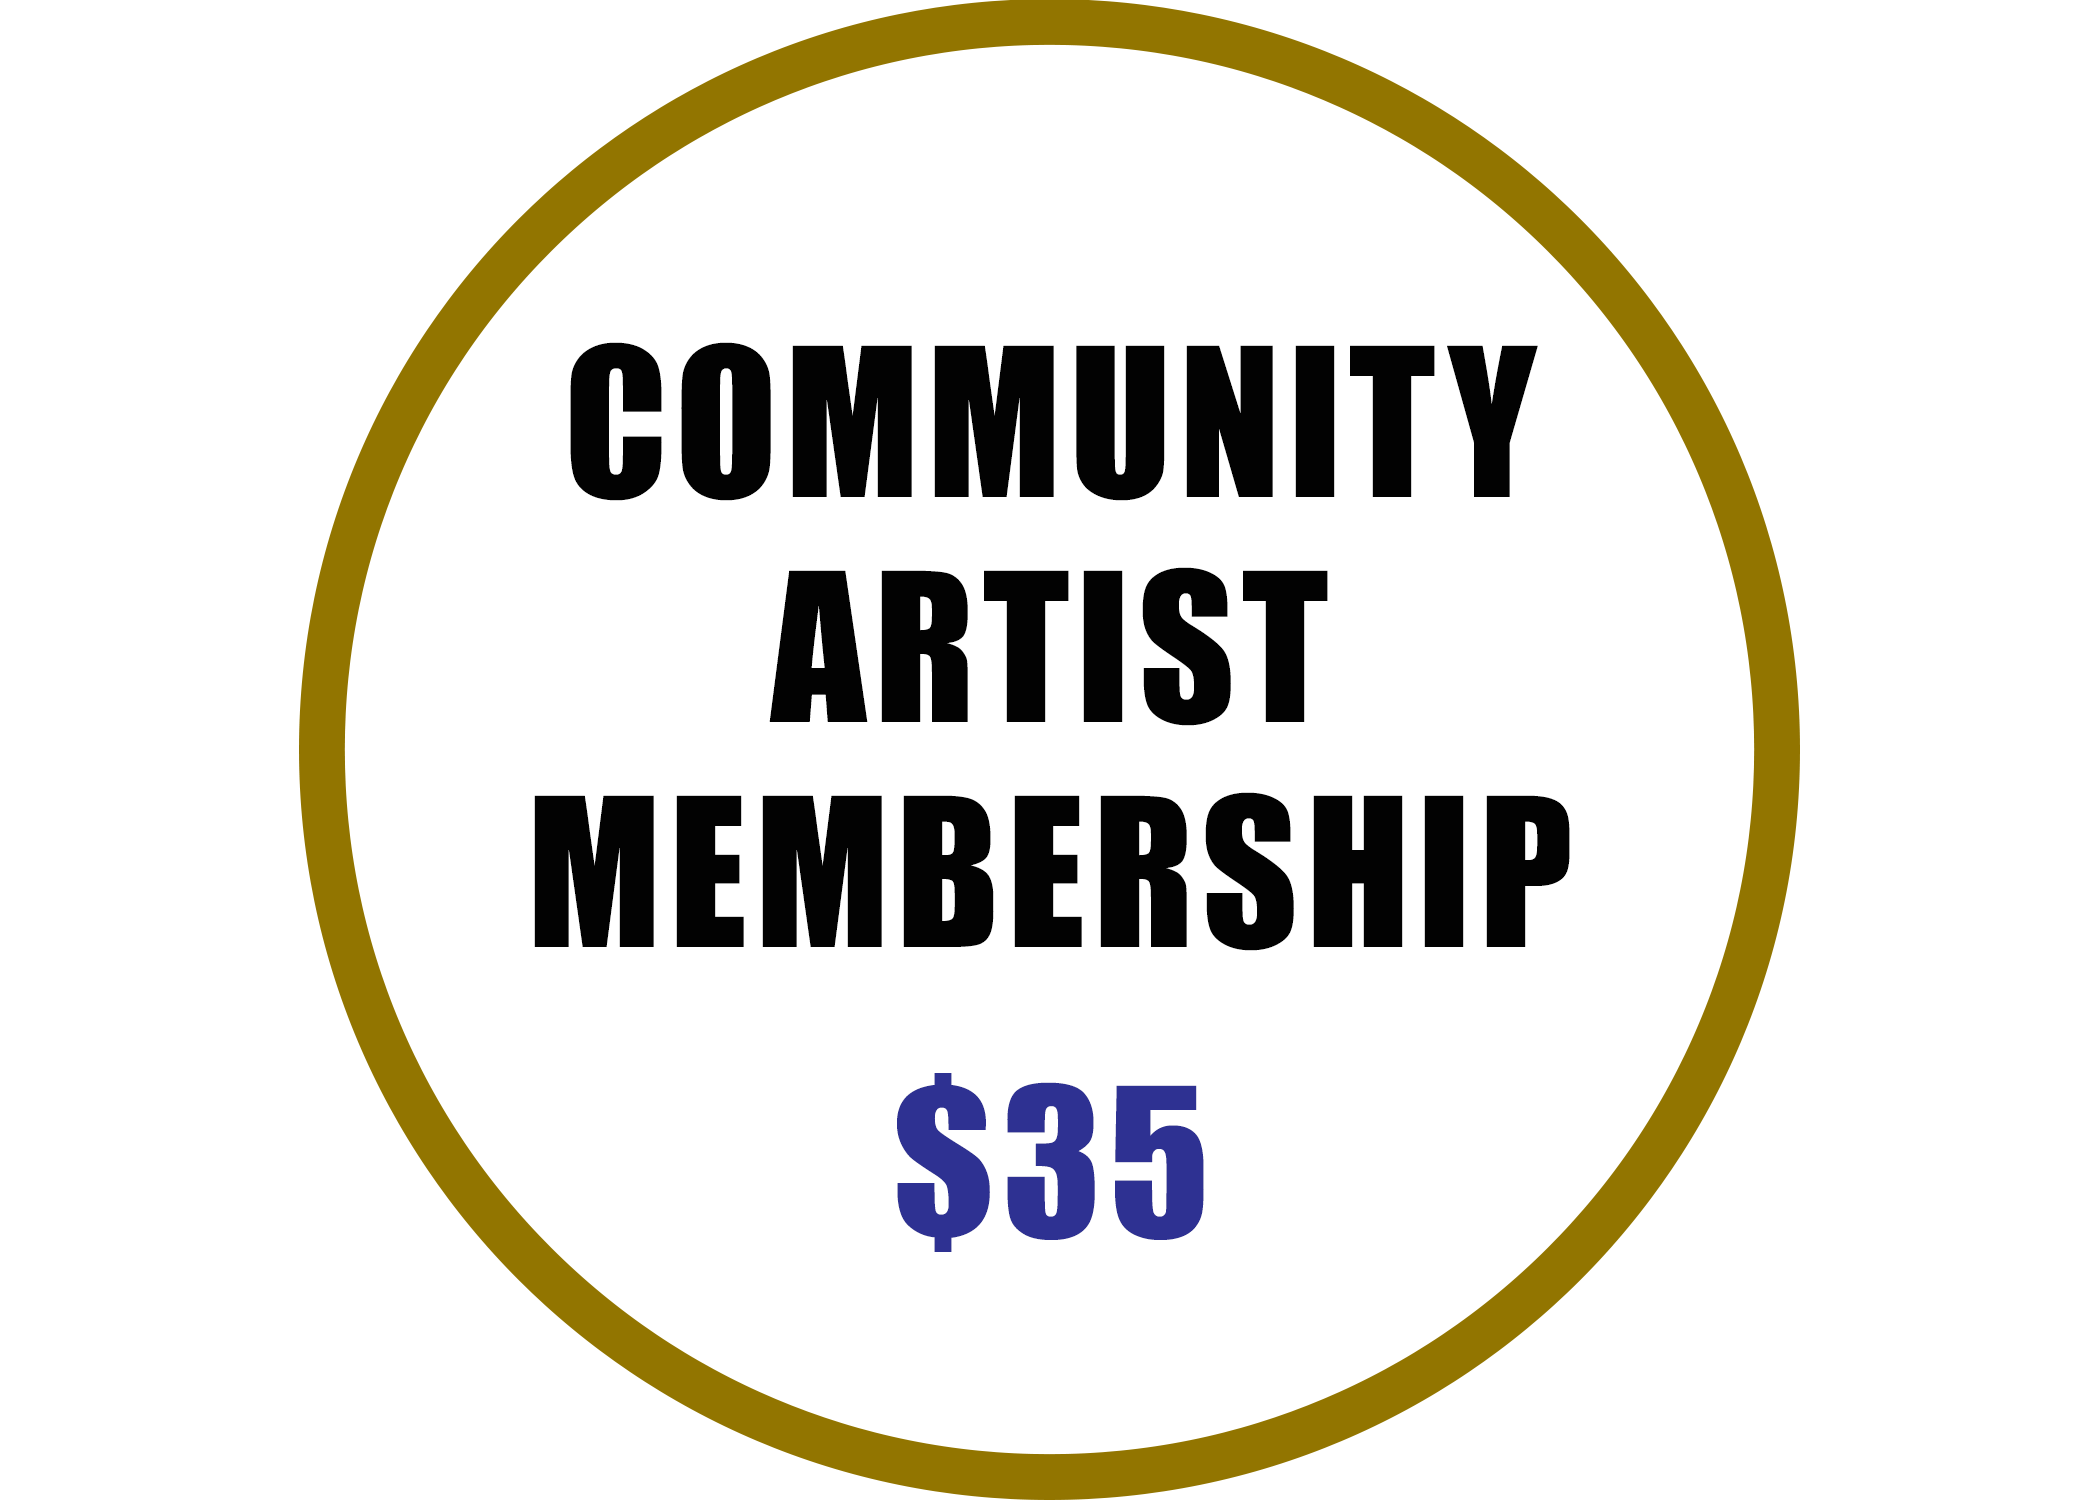 Community Artist Membership benefits include:  -Listing on Artist Roster on the ACGBR Website -Complimentary Admission to Arts Summit 2019 -Invitation to Professional Development Workshops -Voting Rights at Annual Meeting